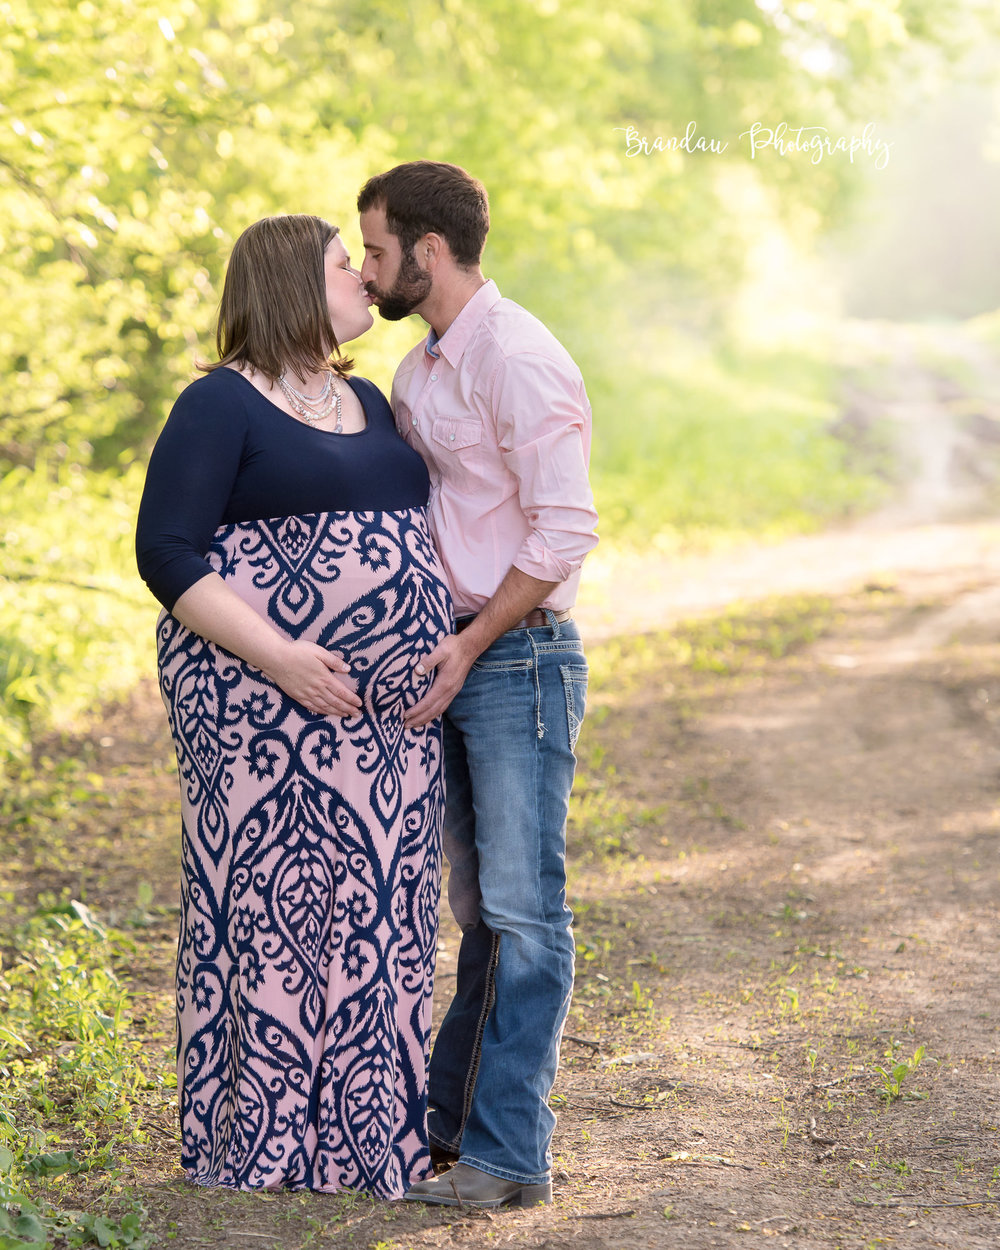 Baby Bump_Couple Kissing_Maternity_Brandau Photography-3.jpg